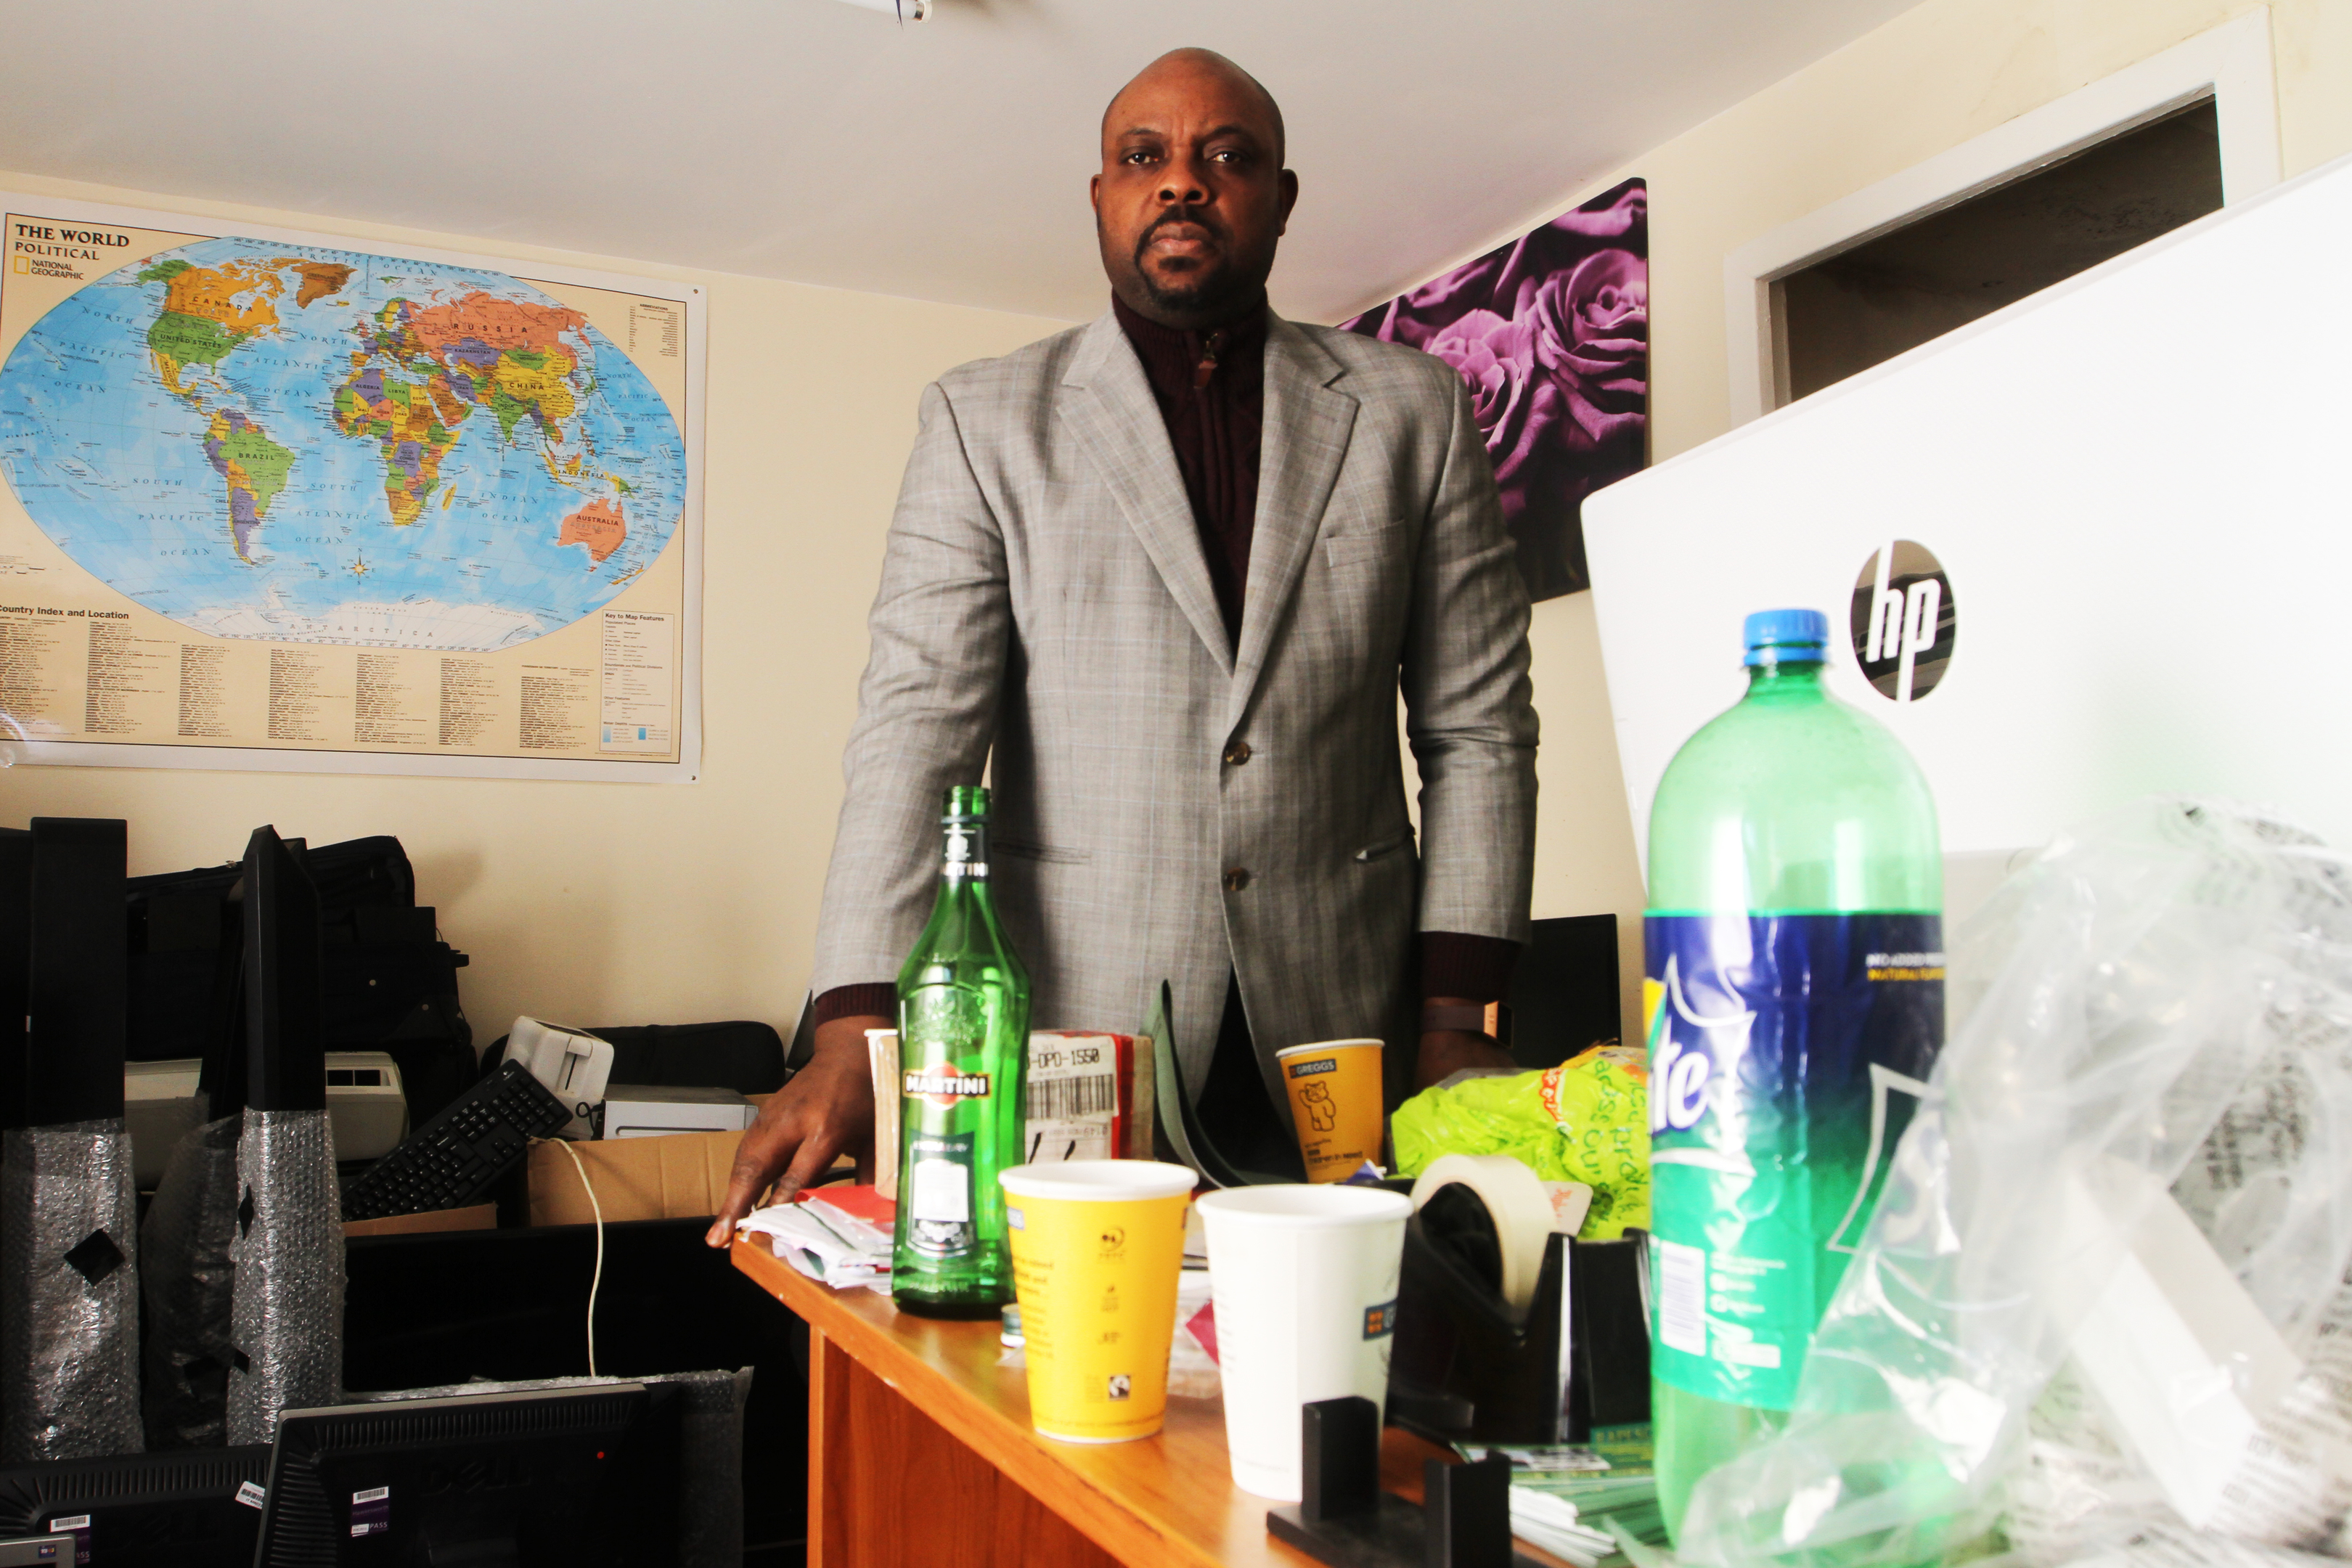 Oluwafani Oki in his Hilltown office with one of the drink bottles left behind by thieves visible on the desk.